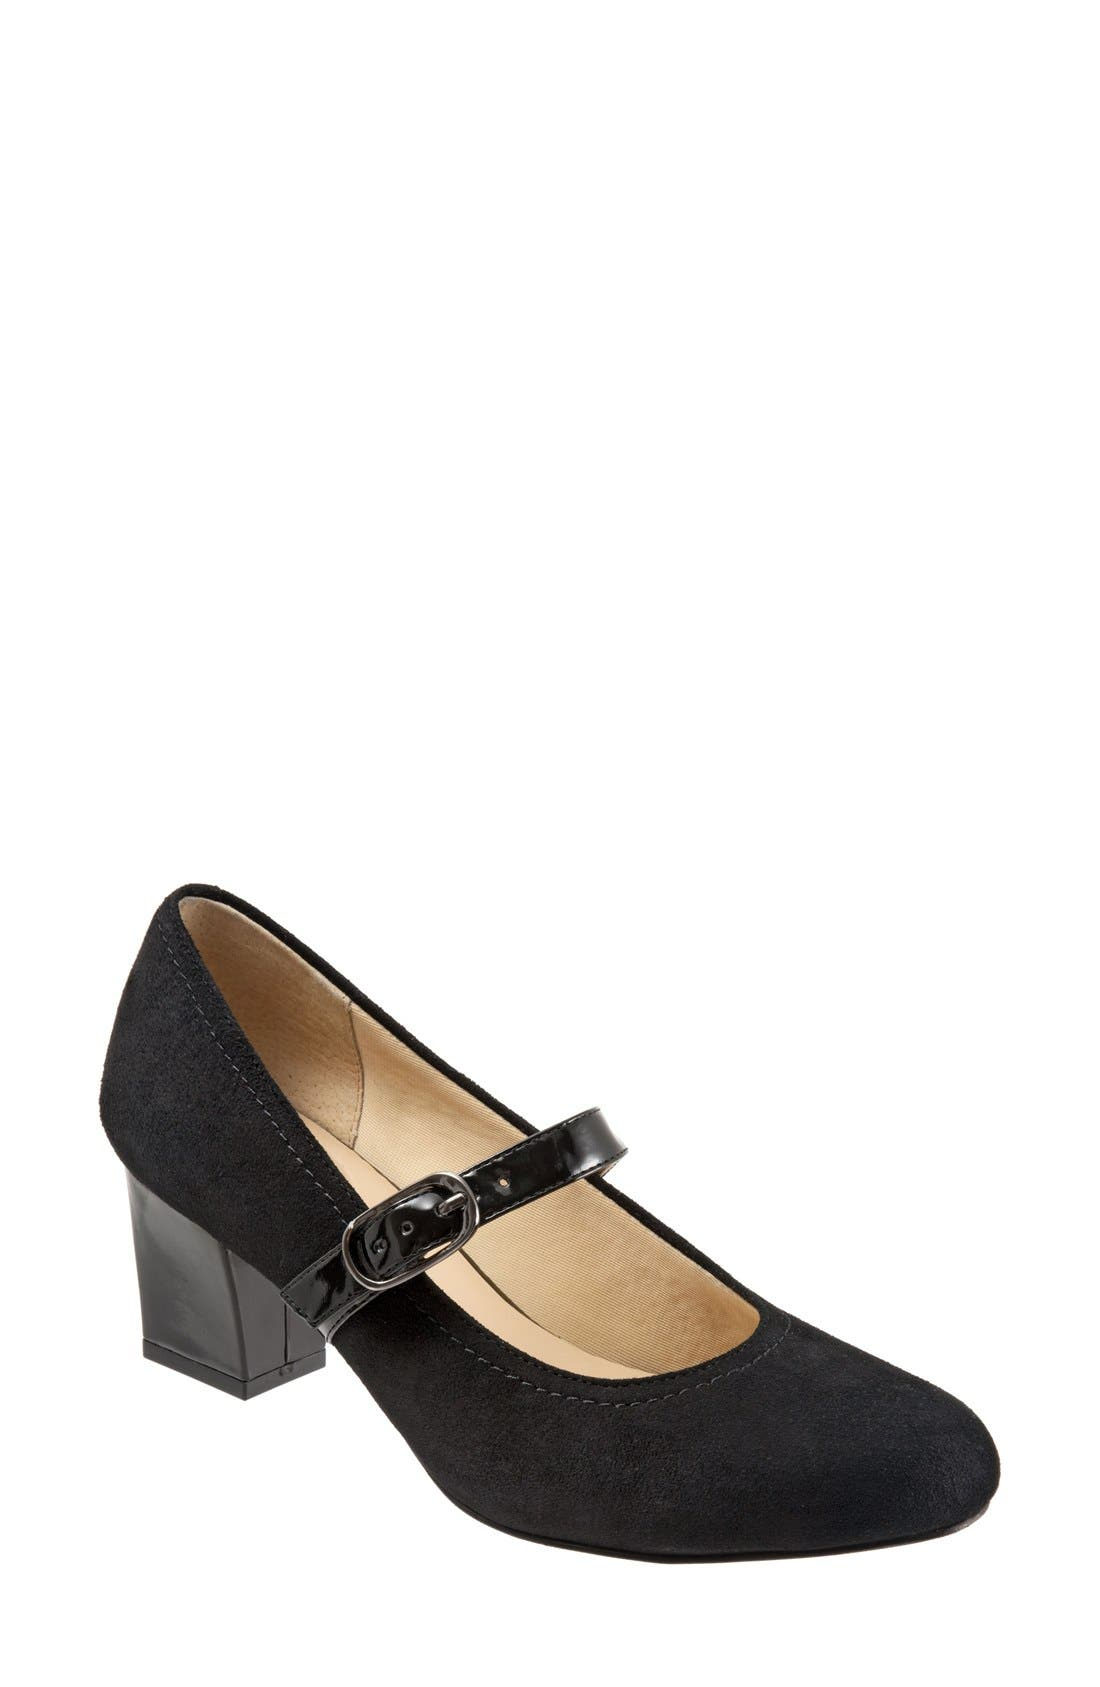 TROTTERS 'Candice' Mary Jane Pump, Main, color, BLACK SUEDE